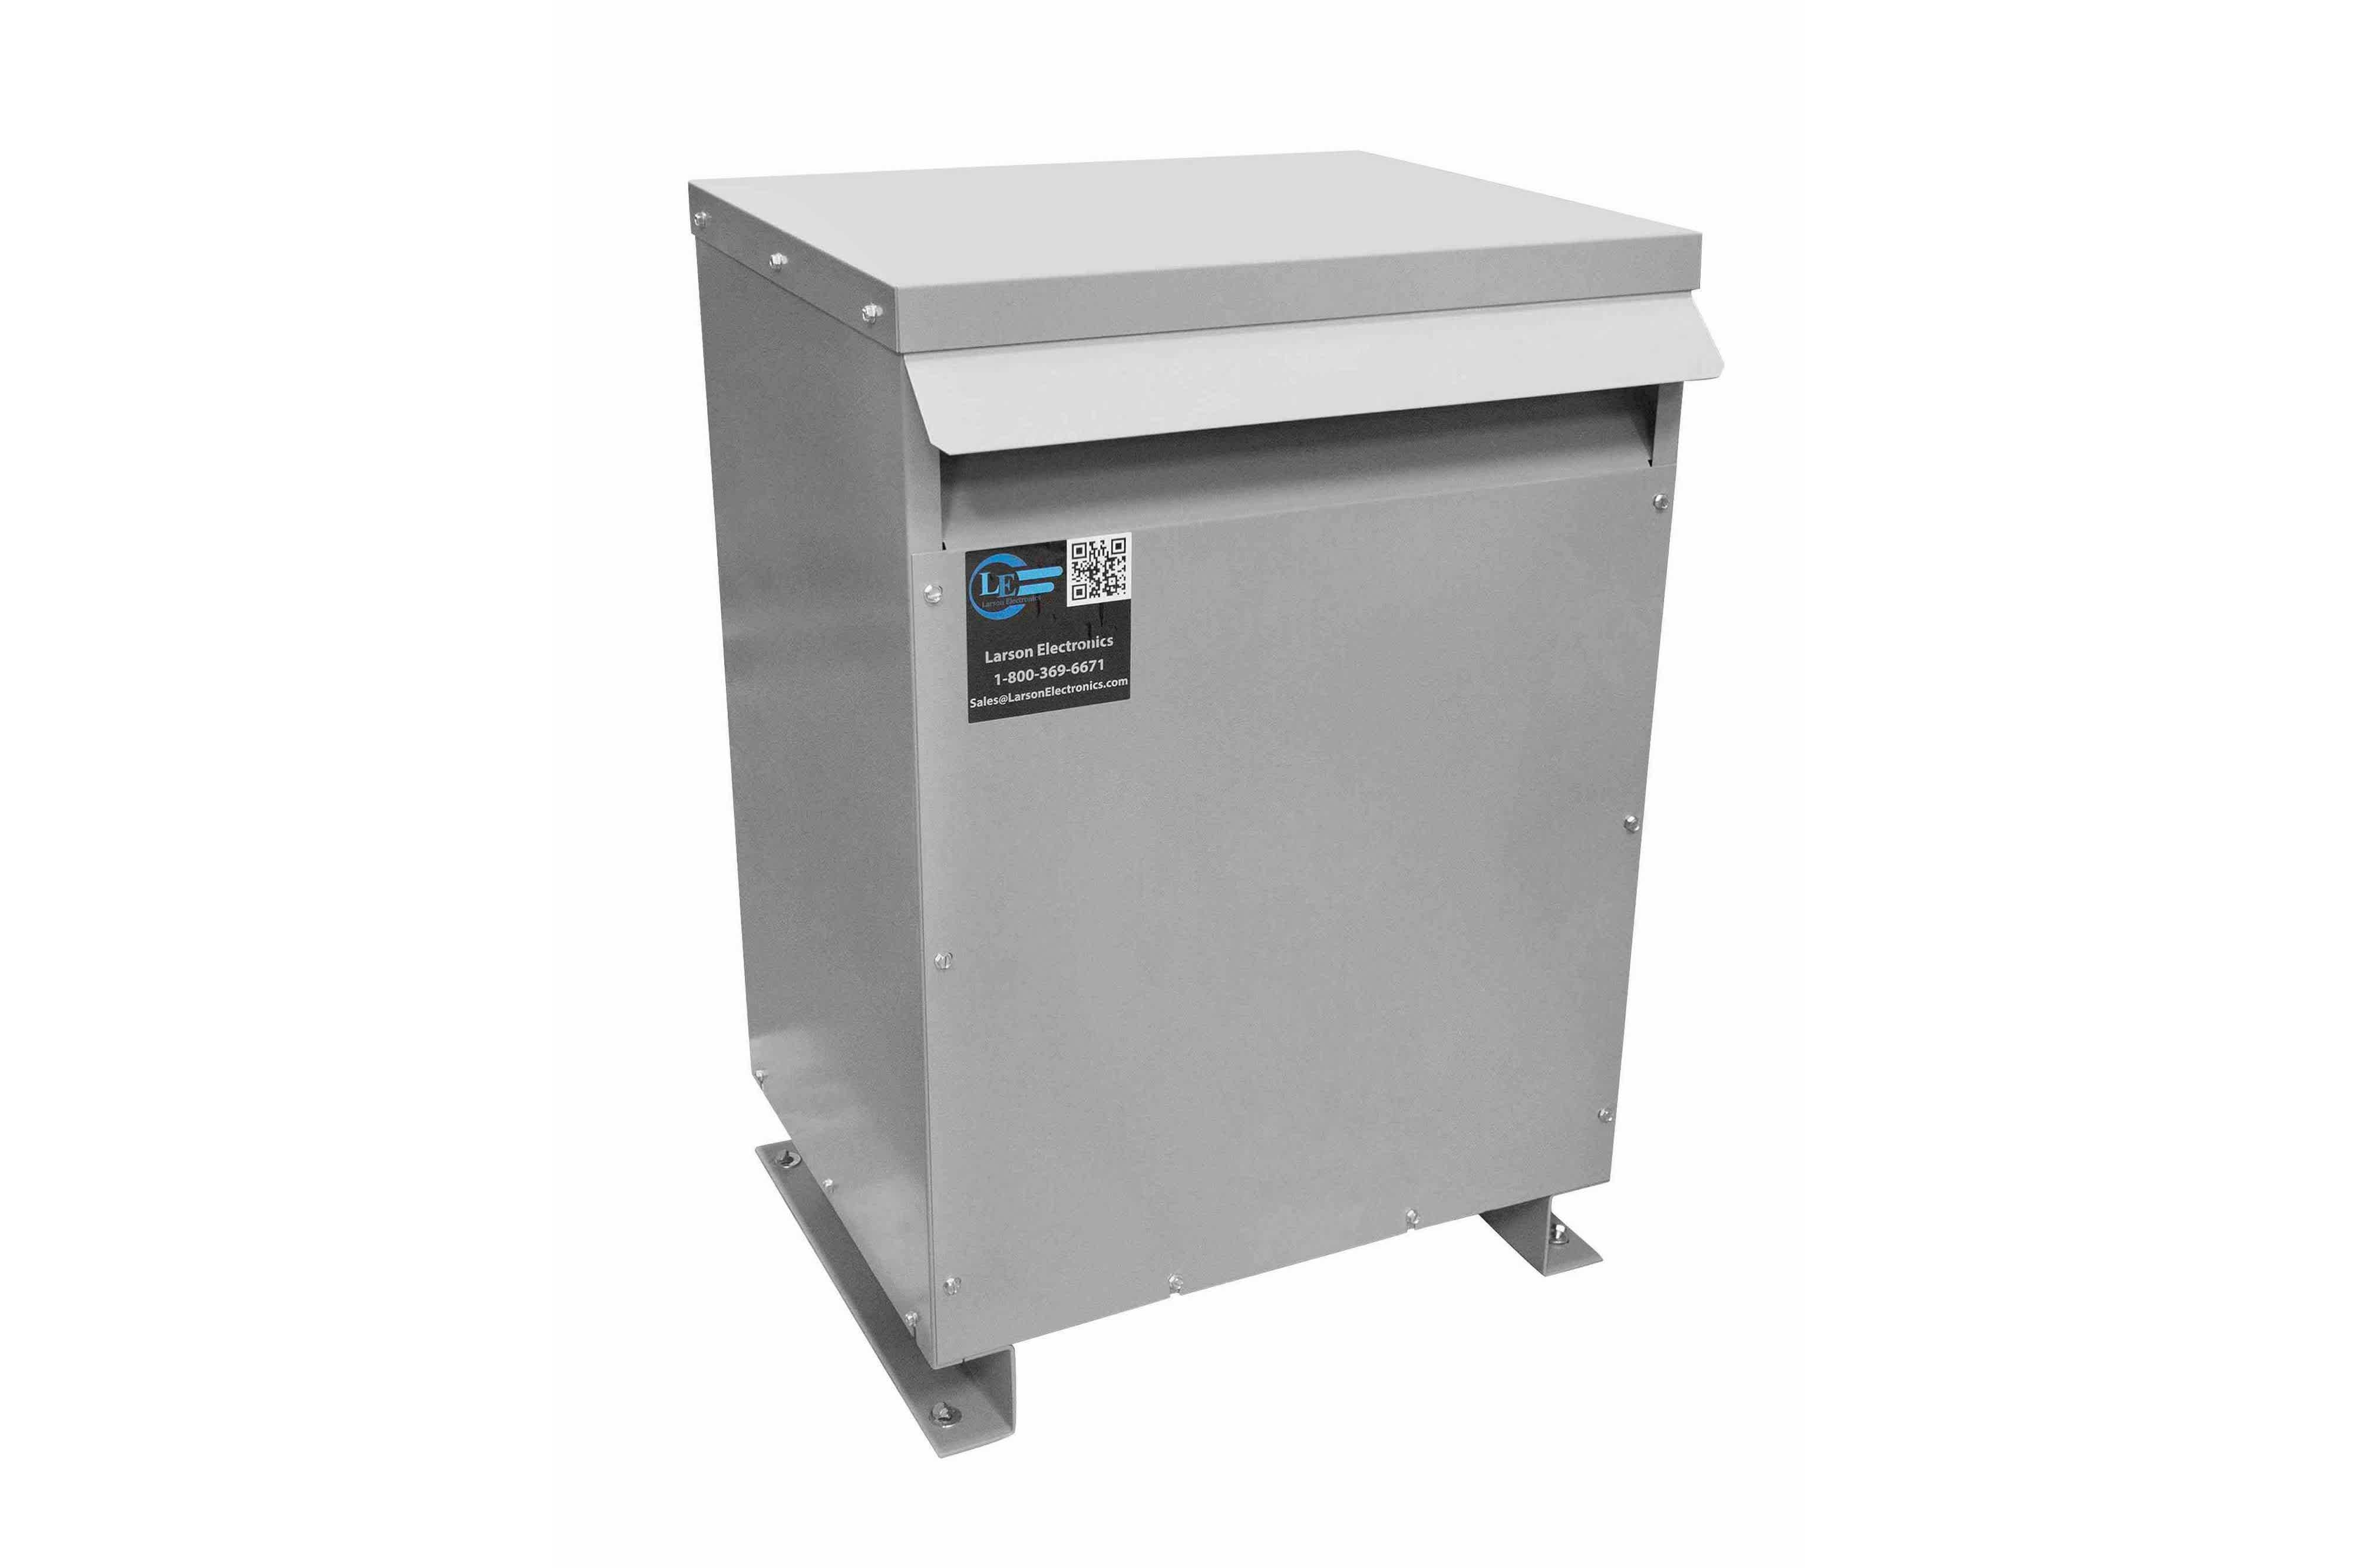 90 kVA 3PH Isolation Transformer, 575V Wye Primary, 400V Delta Secondary, N3R, Ventilated, 60 Hz